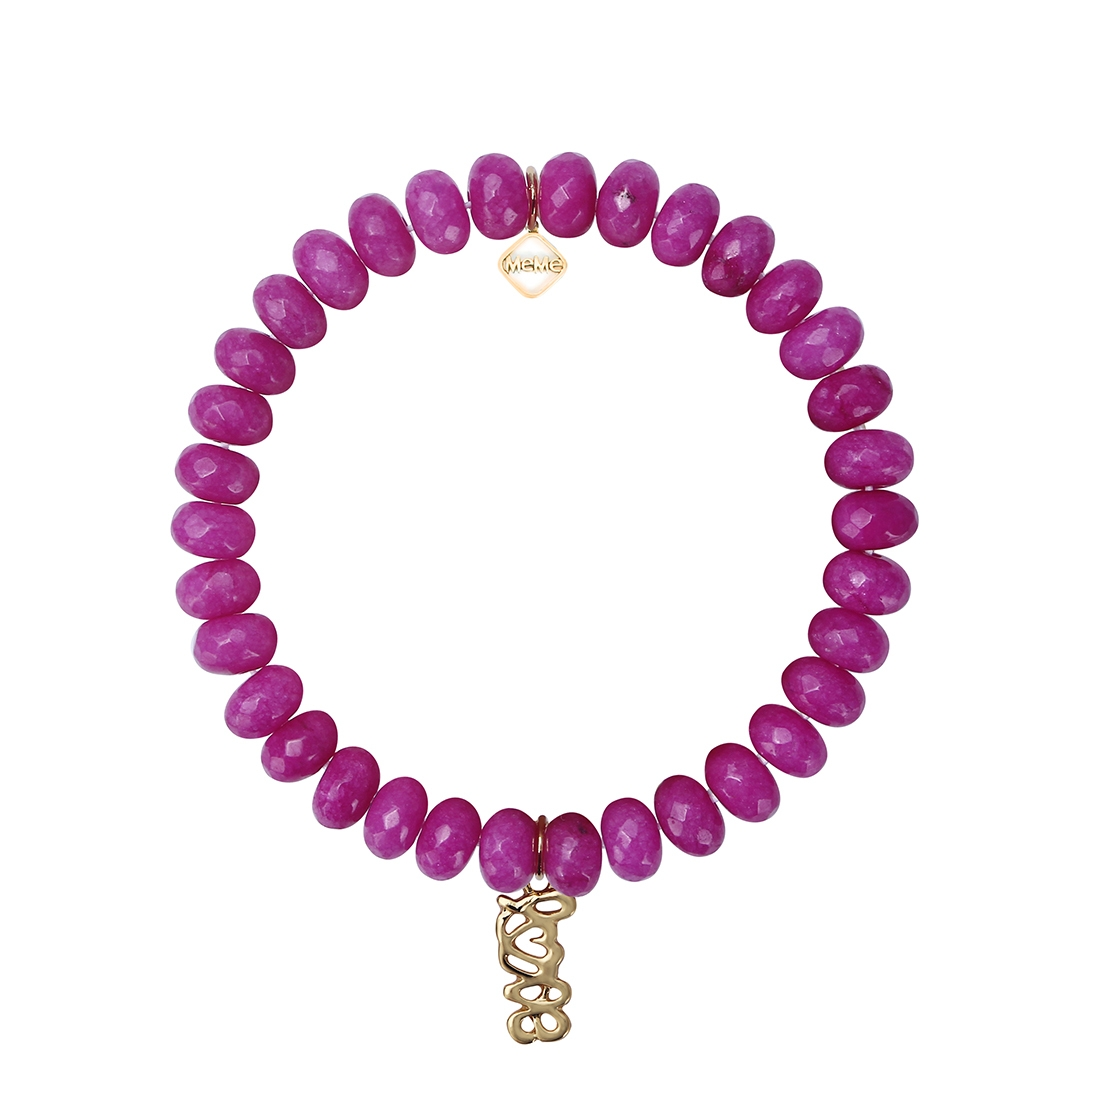 MEME LONDON I HEART YOU - MAGENTA WITH GOLD